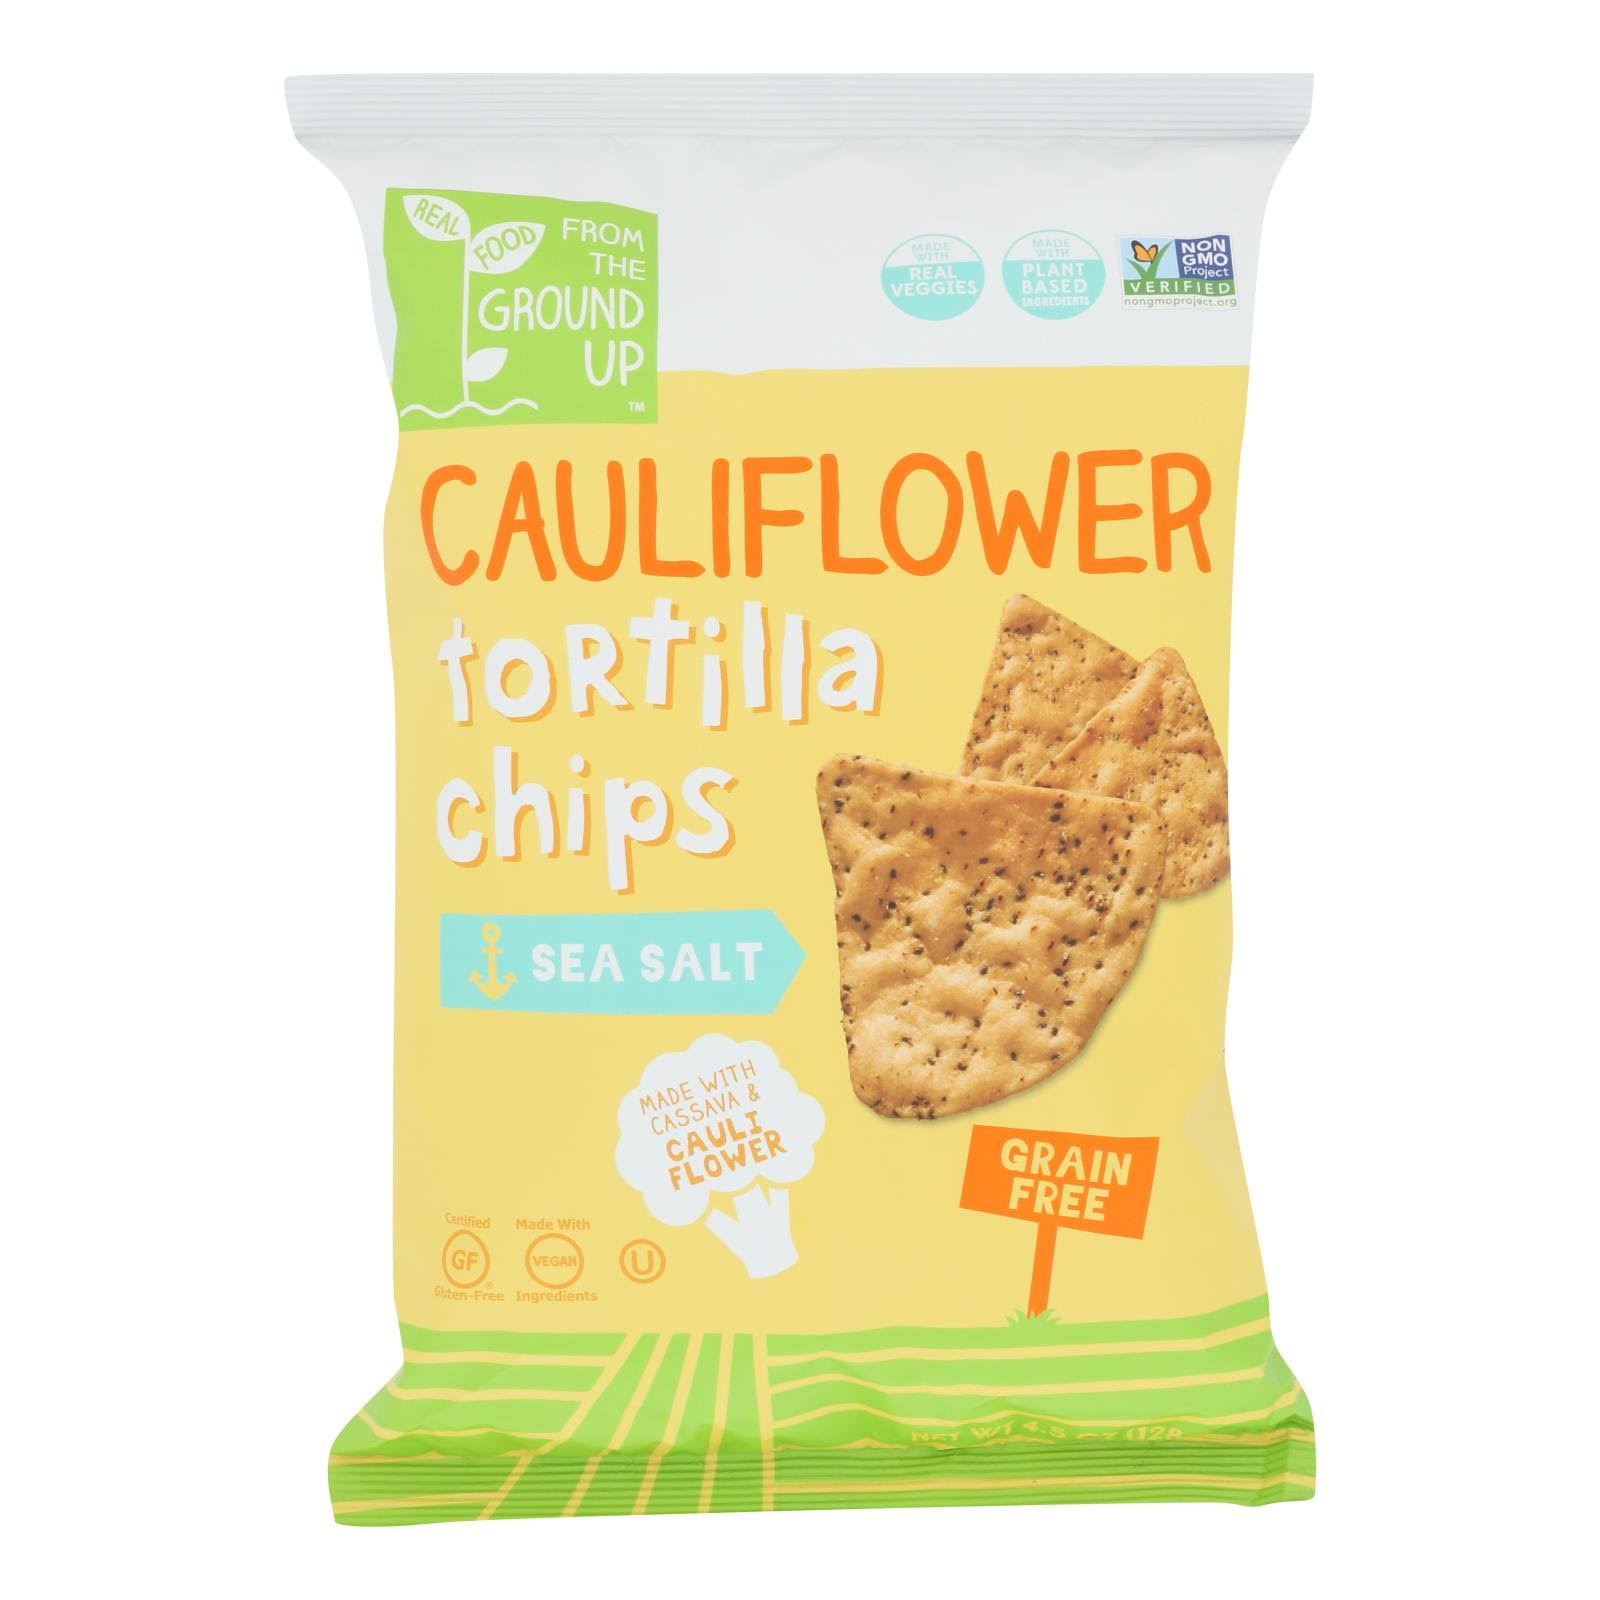 From The Ground Up Tortilla Chips, Grain Free, Sea Salt, Cauliflower - 4.5 oz